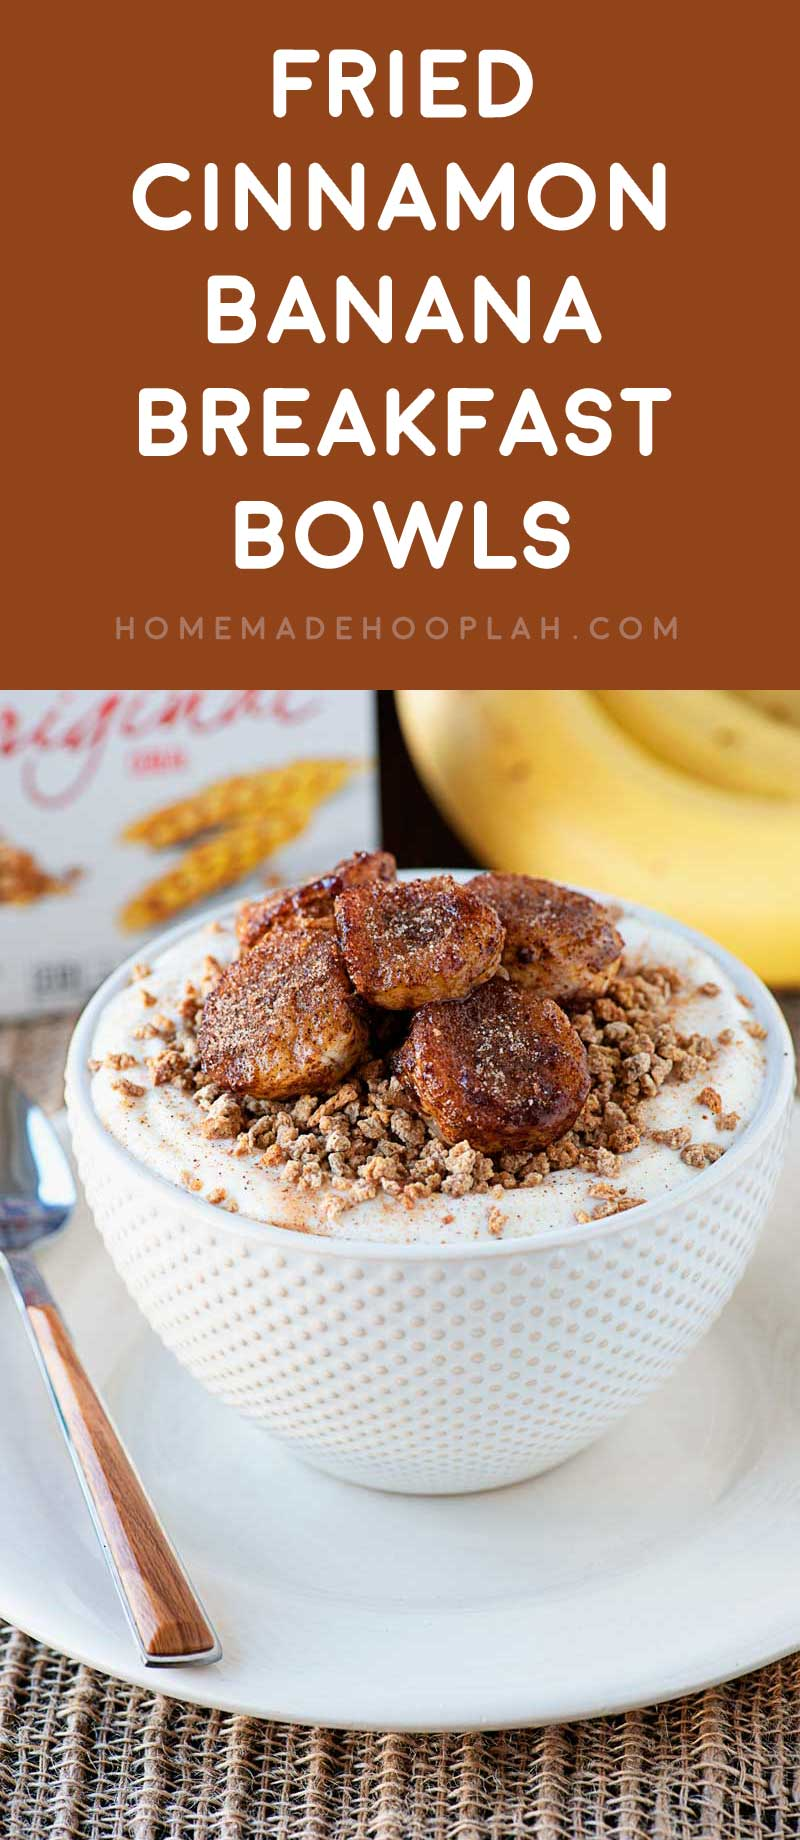 Fried Cinnamon Banana Breakfast Bowls! Creamy greek yogurt topped with Grape-Nuts®cereal and pan fried bananas with a sweet cinnamon coating. An easy and delicious breakfast! #ad #Postfortheholidays #SINGMovieSweeps #PostSave$4 | HomemadeHooplah.com